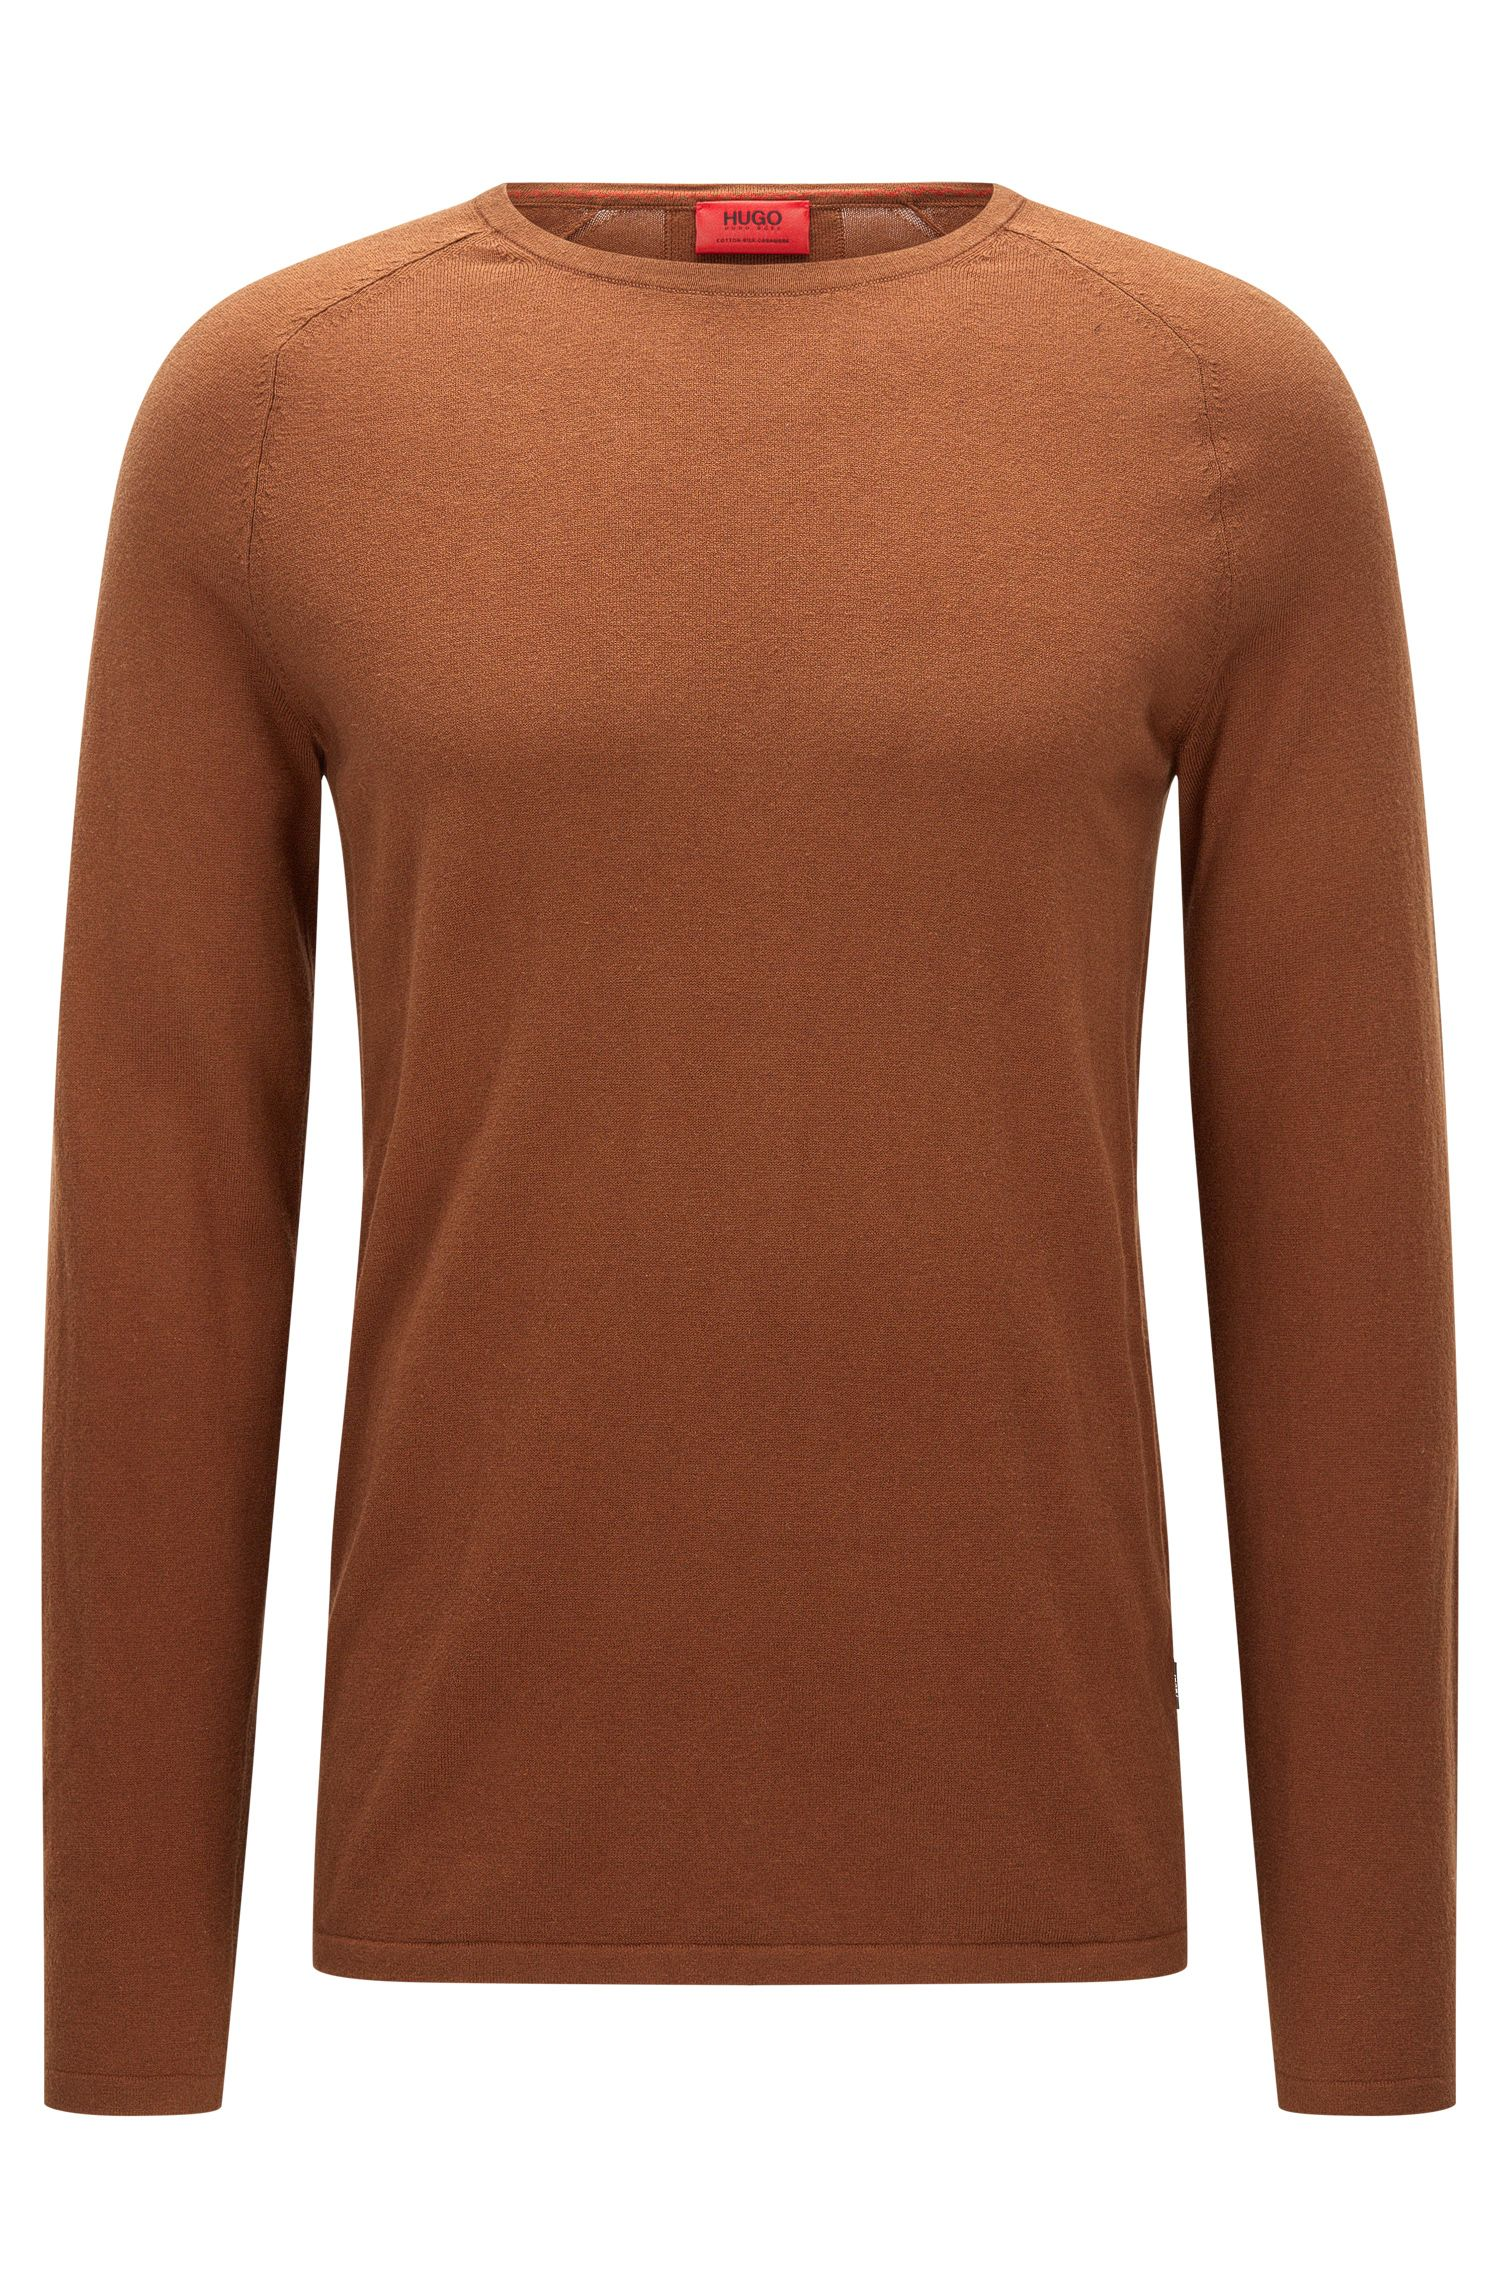 Crew neck sweater in a cotton blend